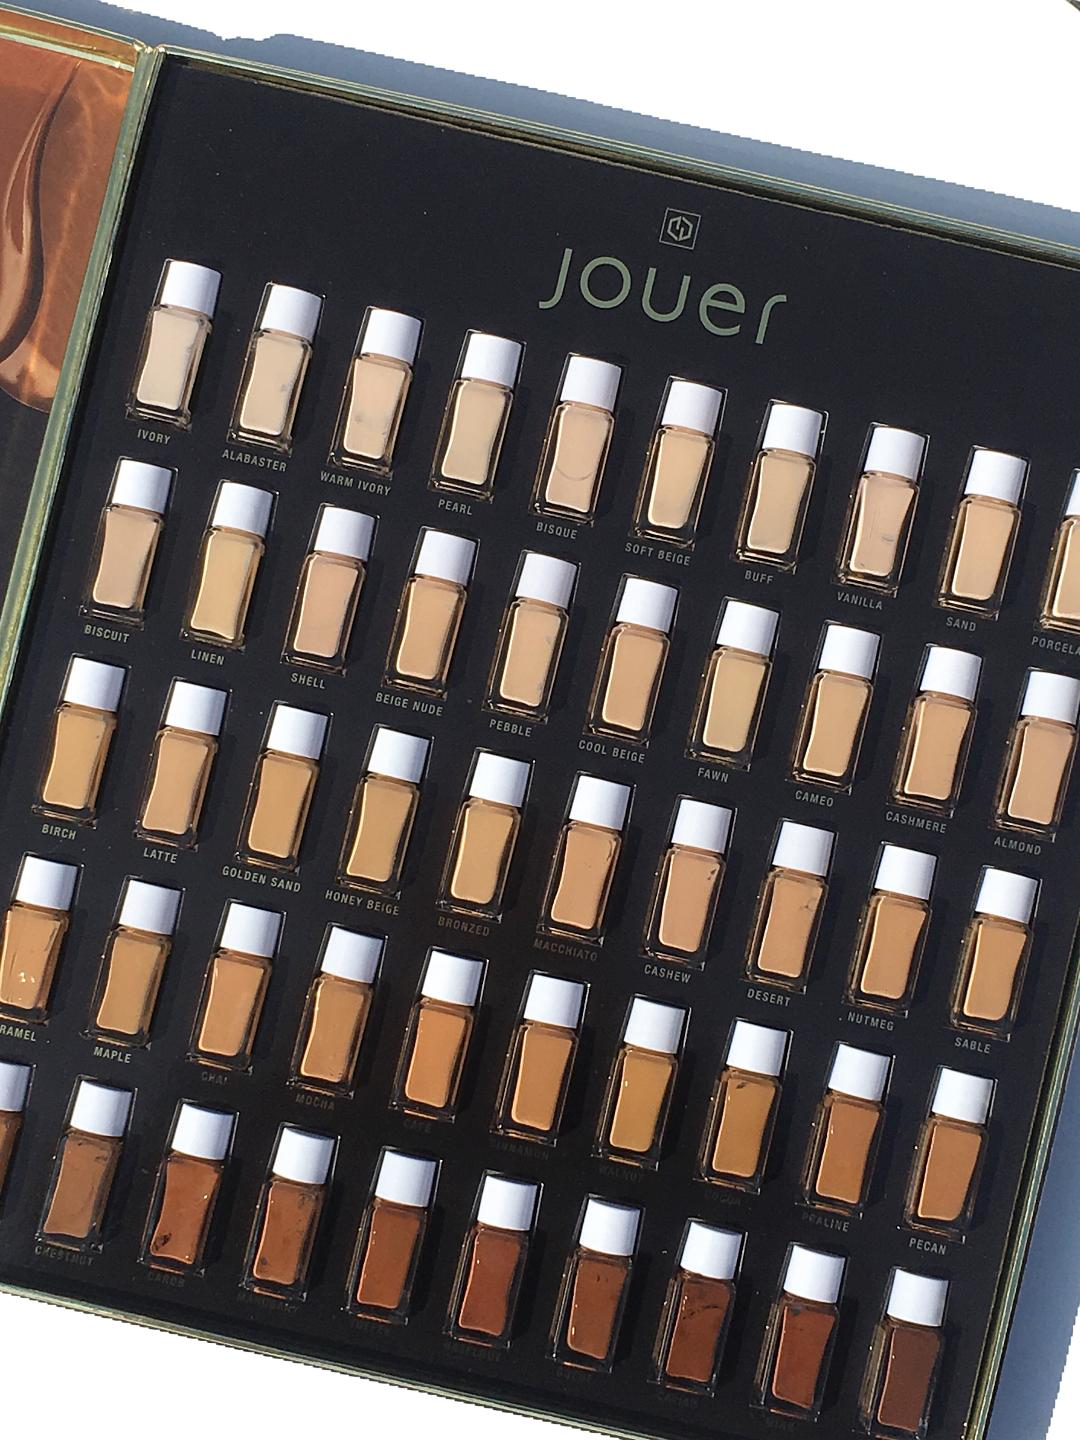 Jouer High Coverage Creme Foundation: Swatches of All 50 Shades